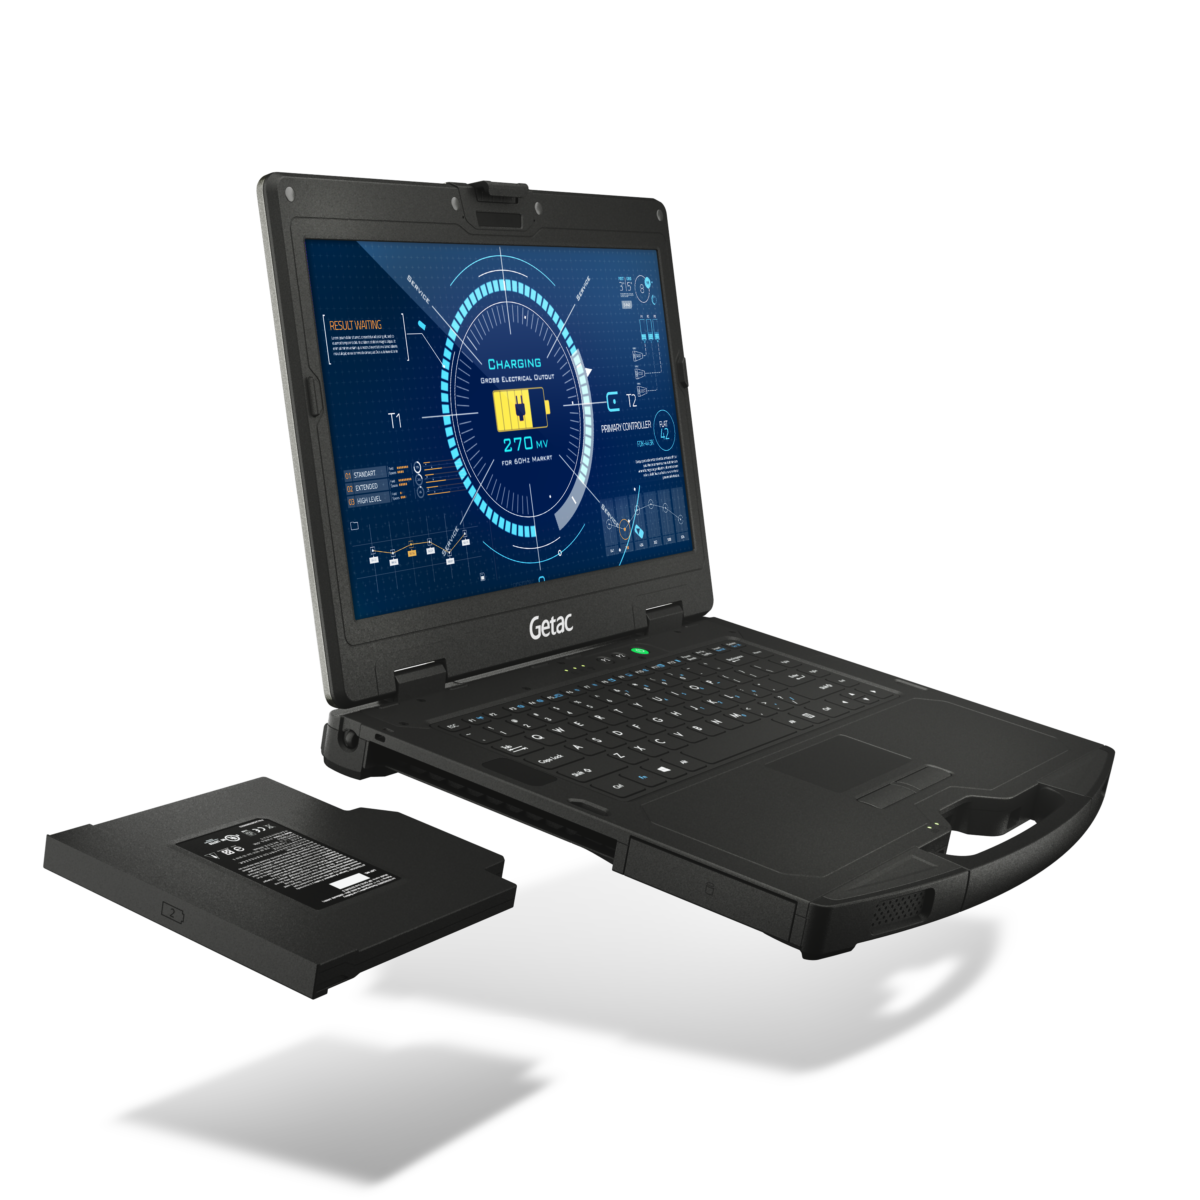 rugged-Industrie-Notebook-S410-Getac